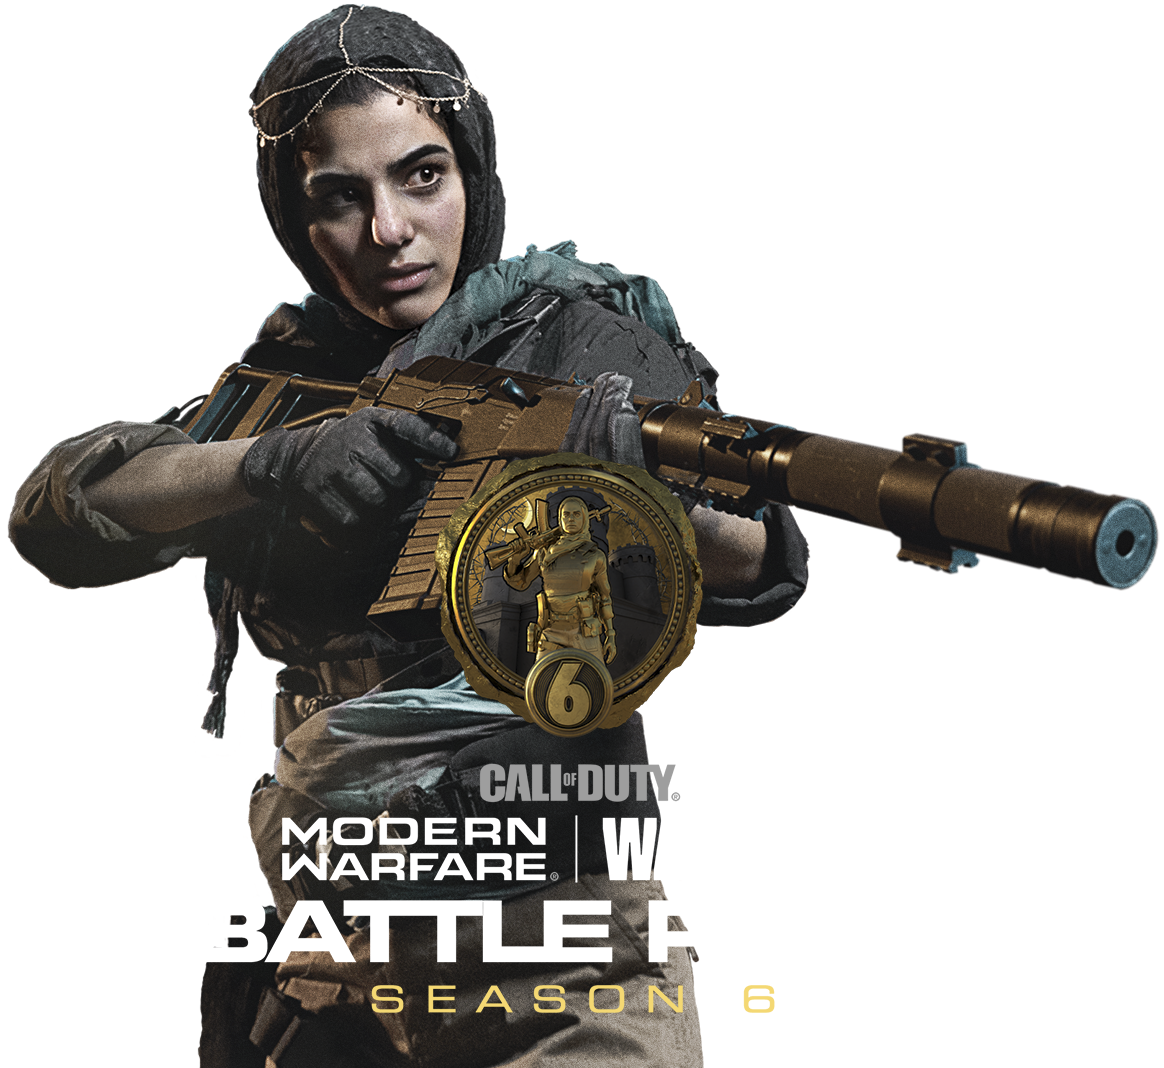 Call of Duty Modern Warefare Battlepass